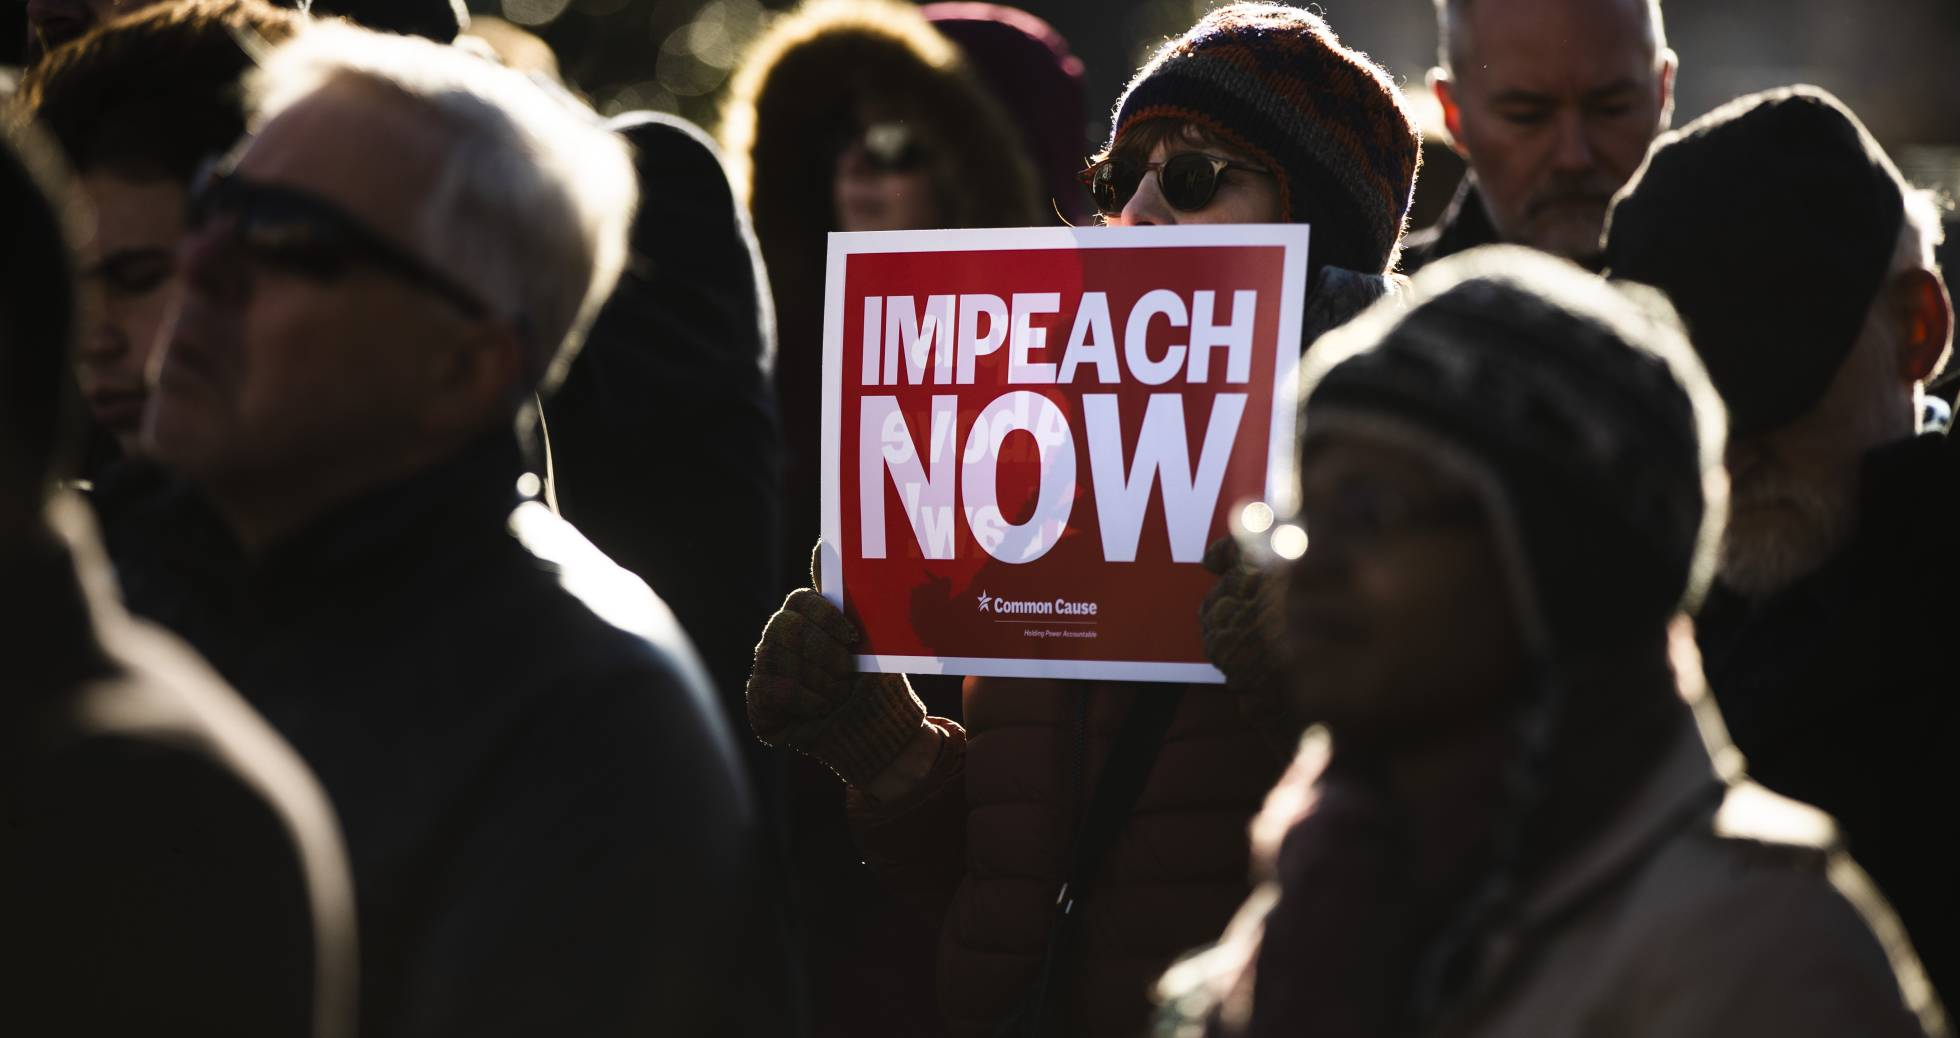 Aprueban en Estados Unidos impeachment contra Trump.